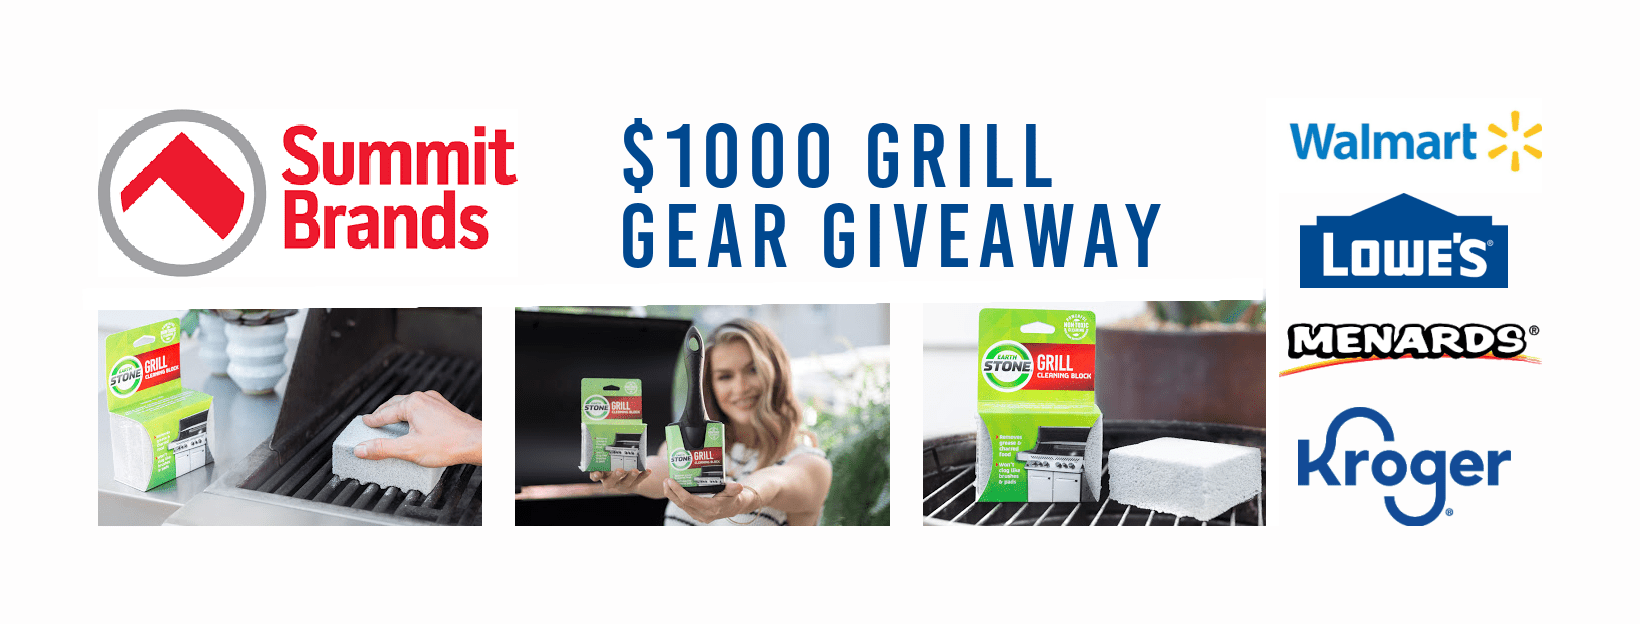 Grill Gear Giveaway! Win a $1000 Gift Card to Lowe's + EarthStone Grill Prize Packs Giveaway Image